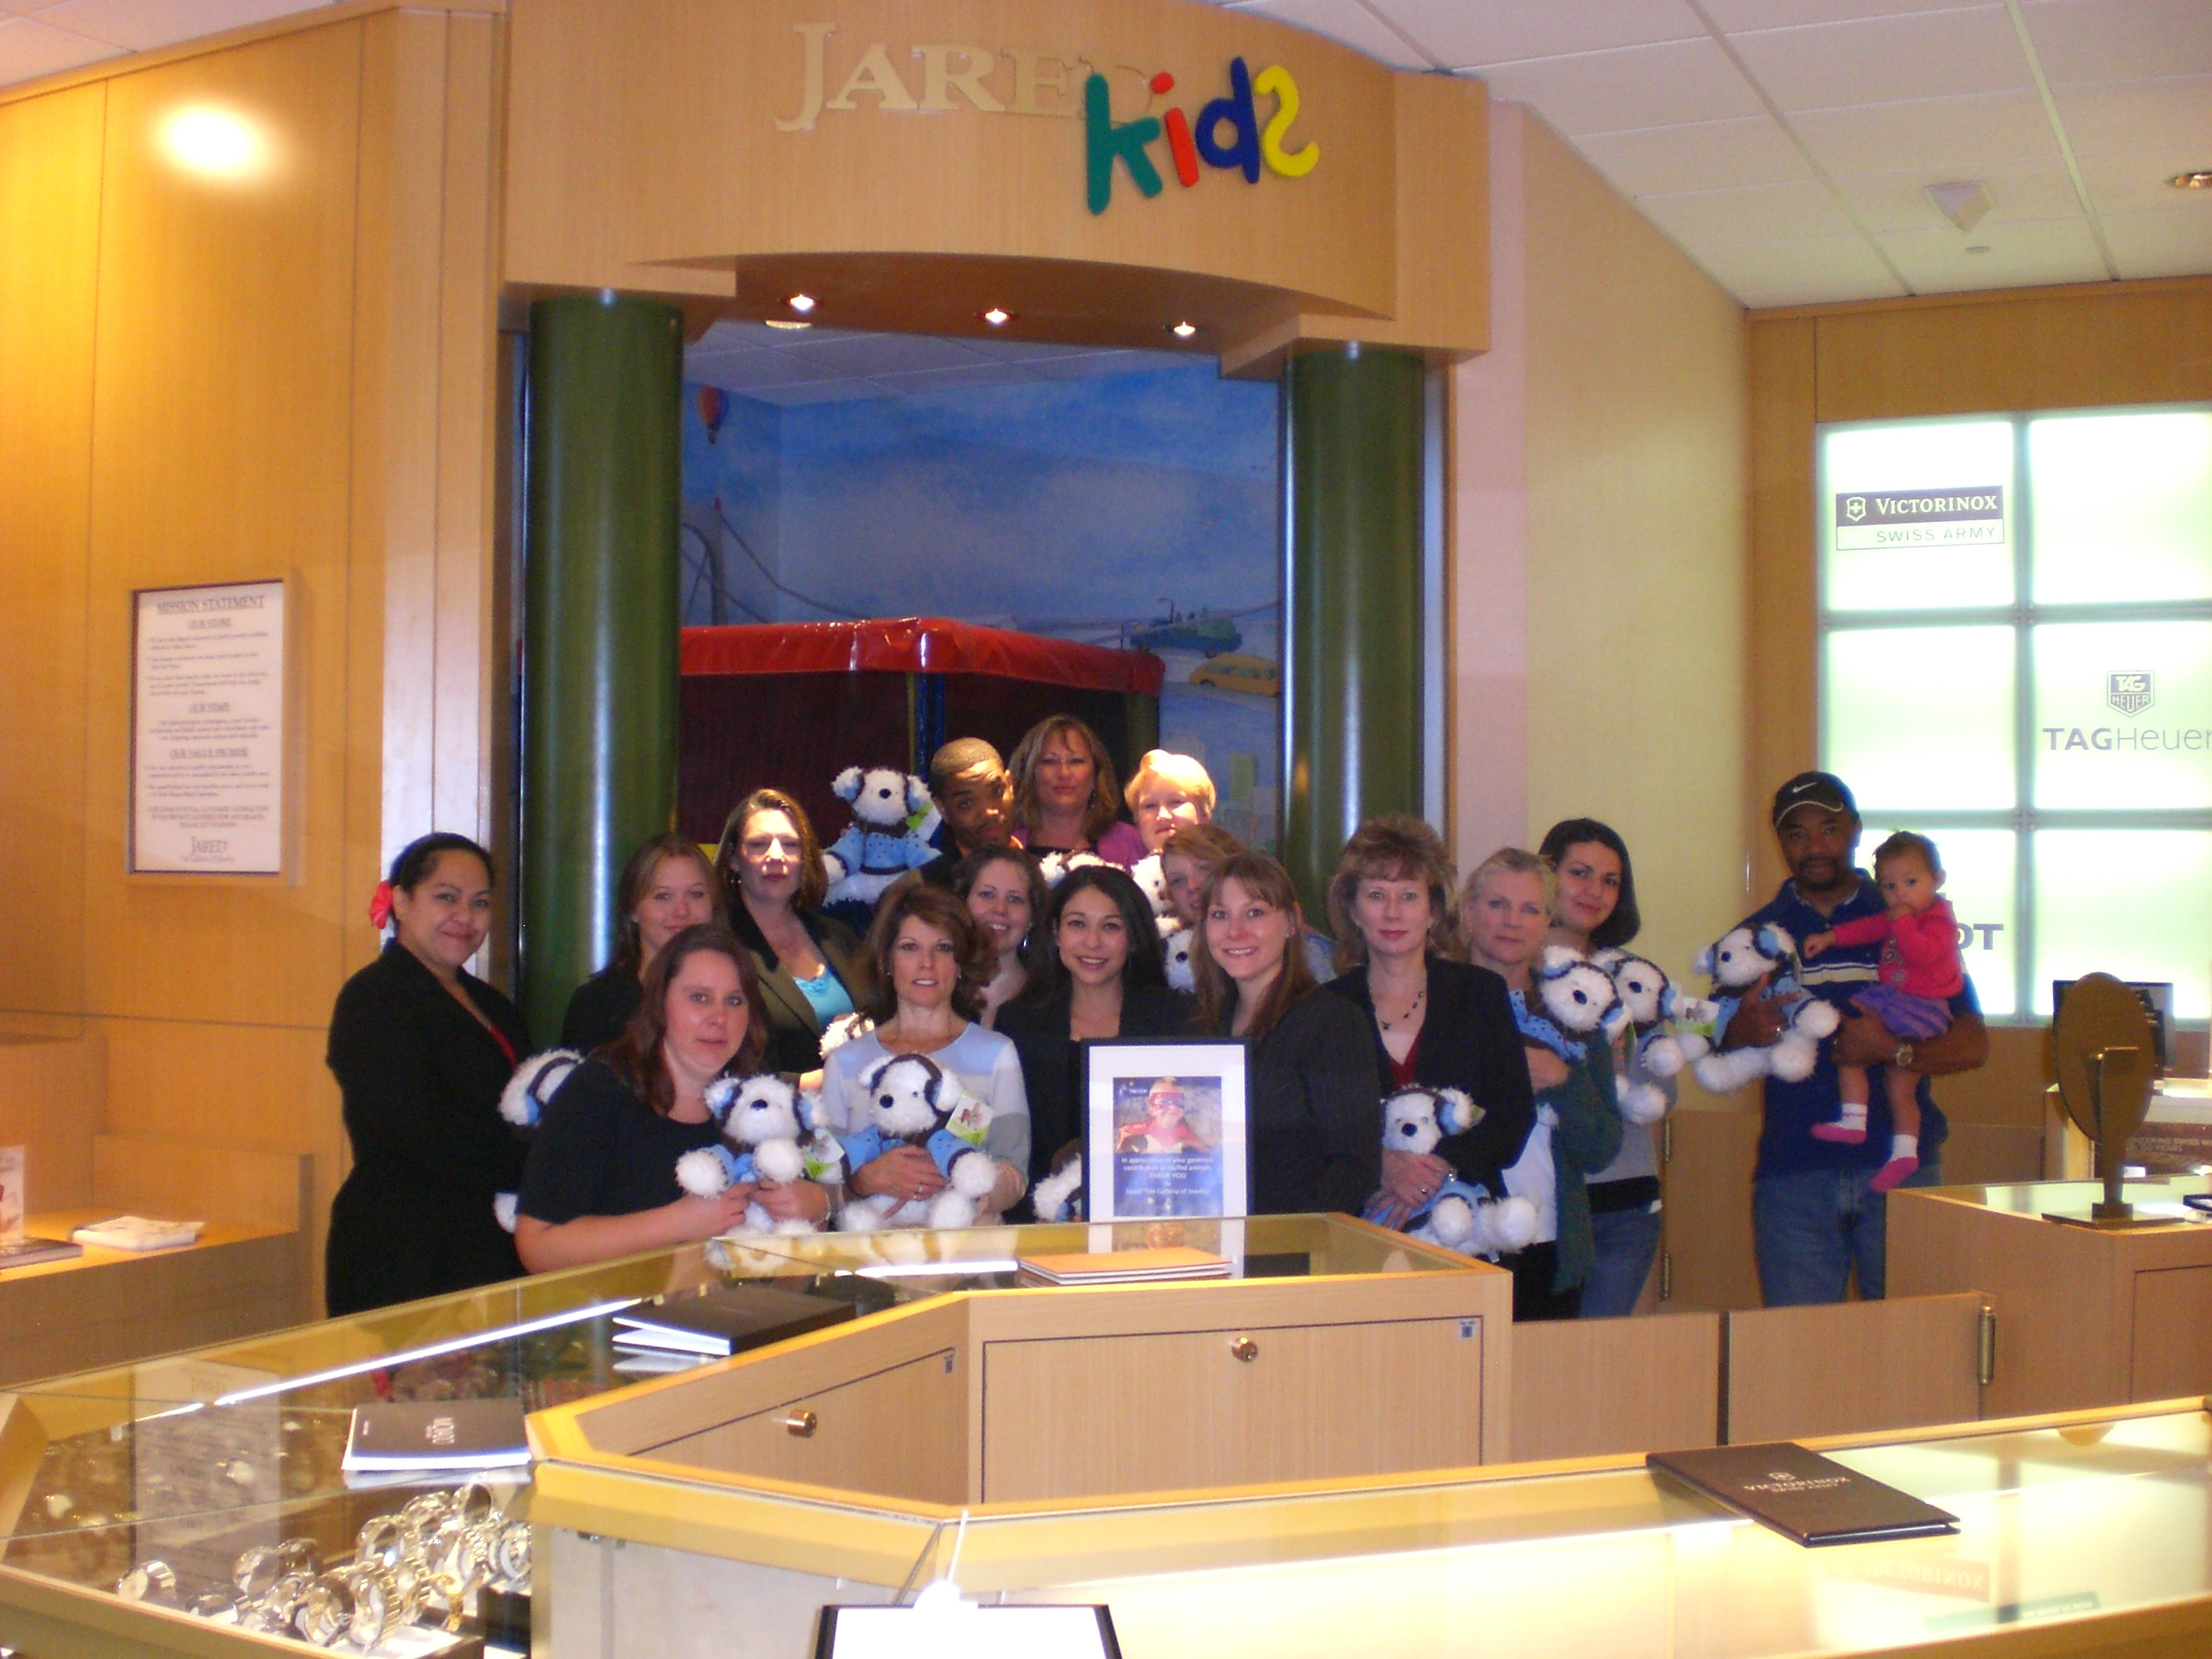 Jared the Galleria of Jewelry Donates Stuffed Animals to Kempe